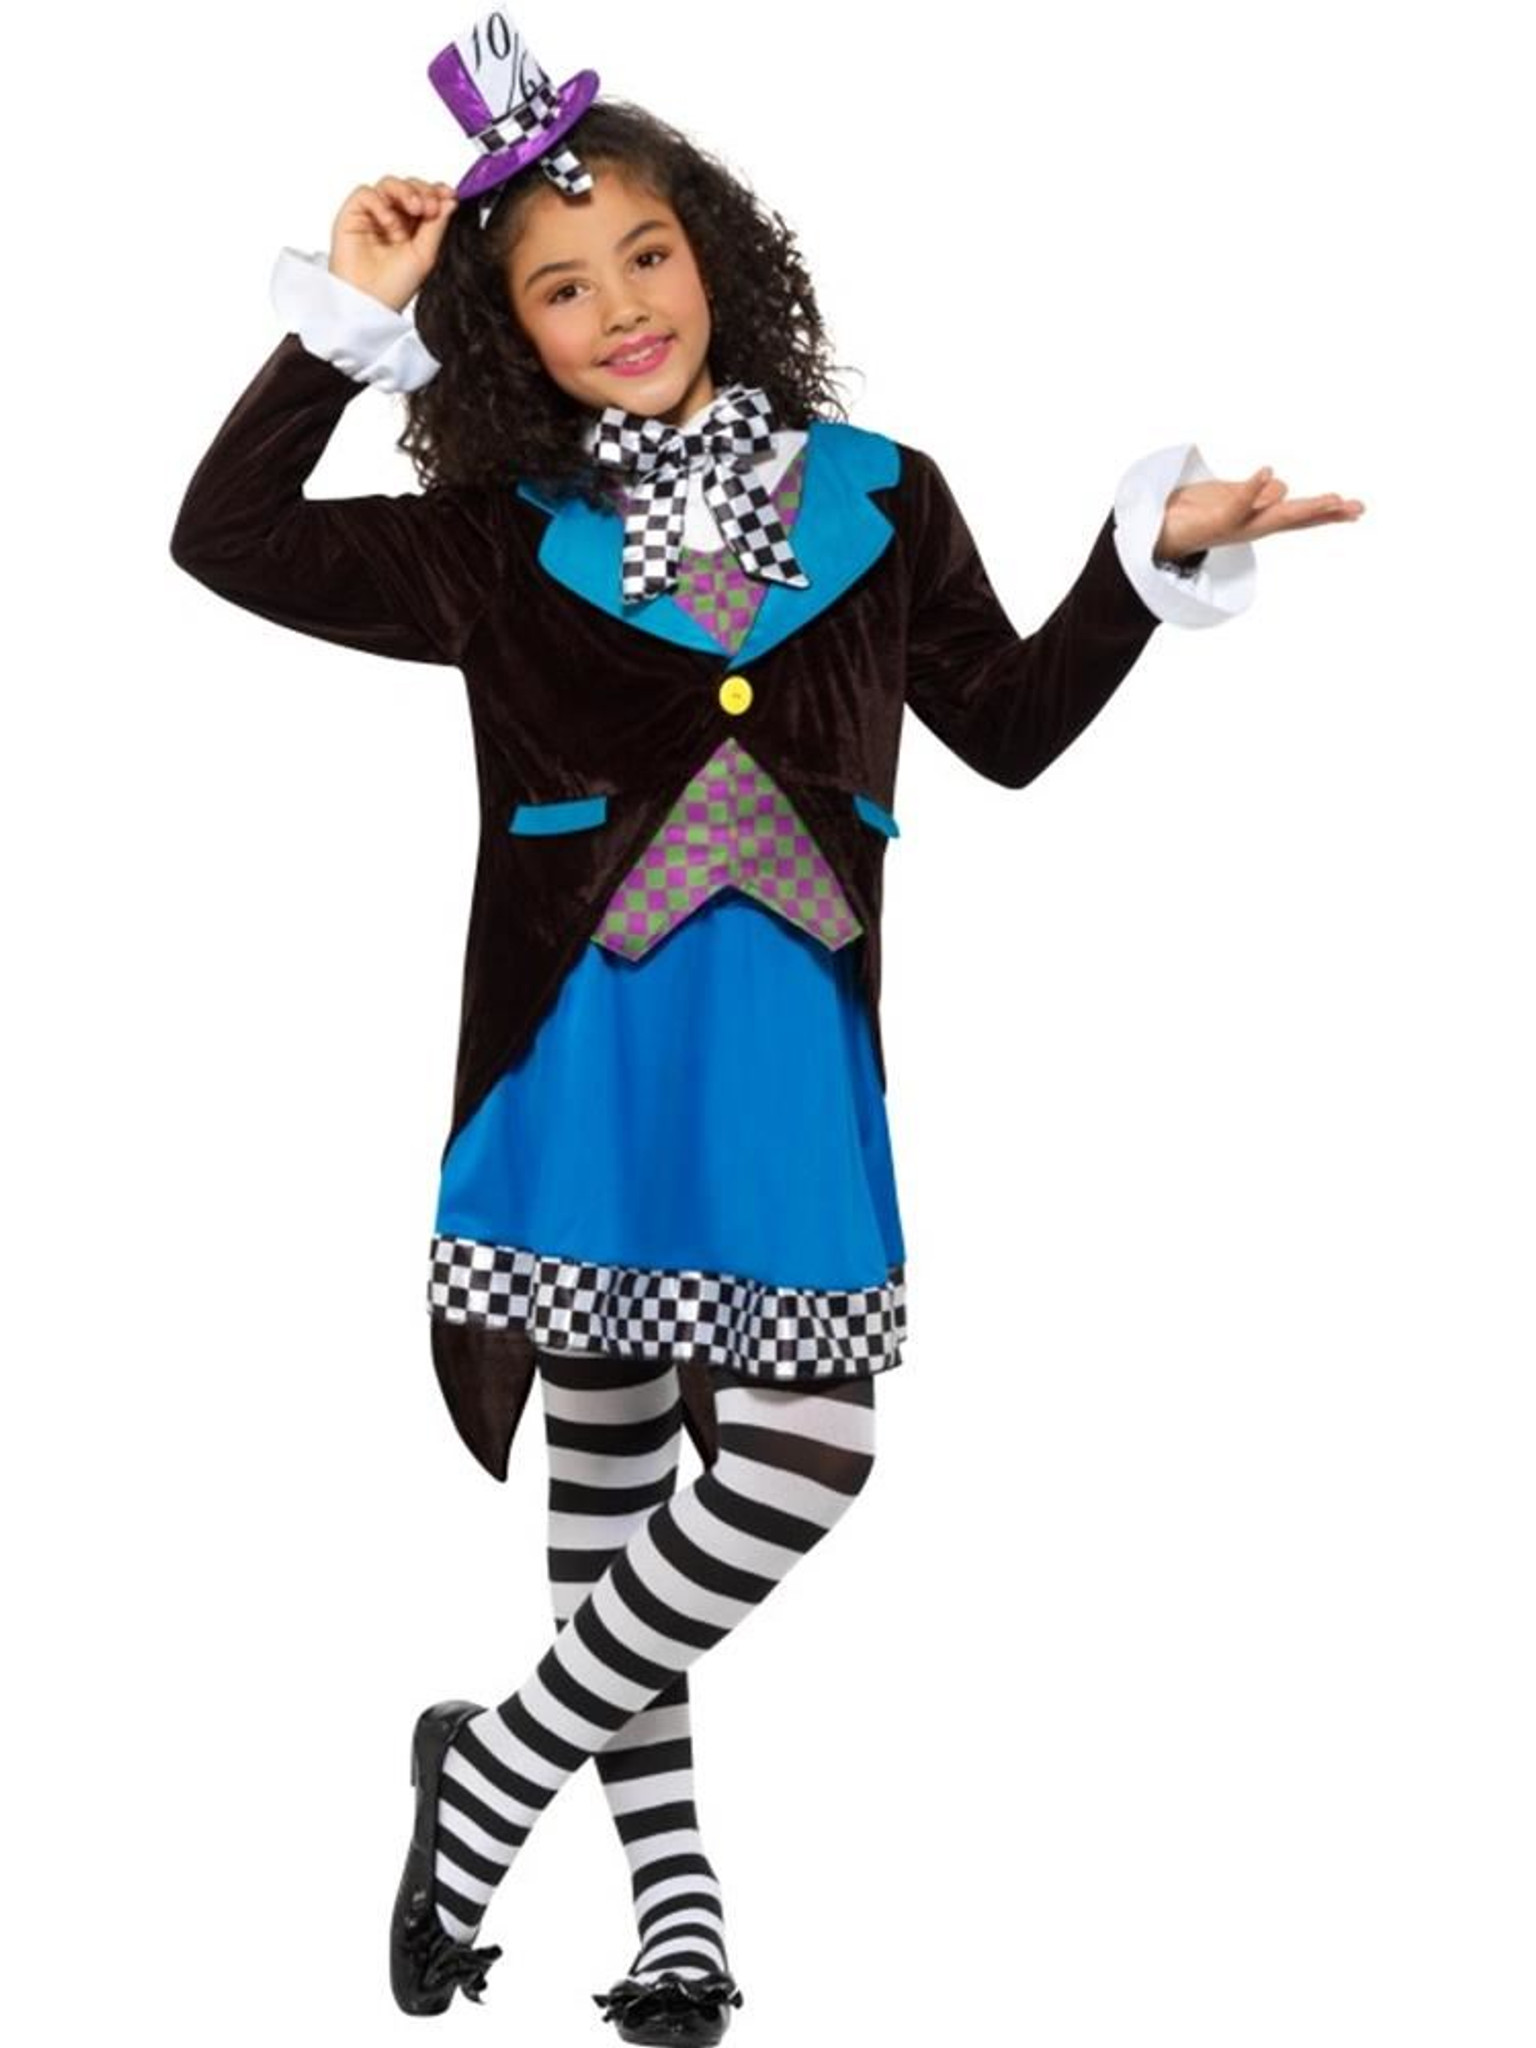 Halloween Costumes For Girls Age 10.Little Miss Mad Hatter Costume With Dress Girls Fancy Dress Large Age 10 12